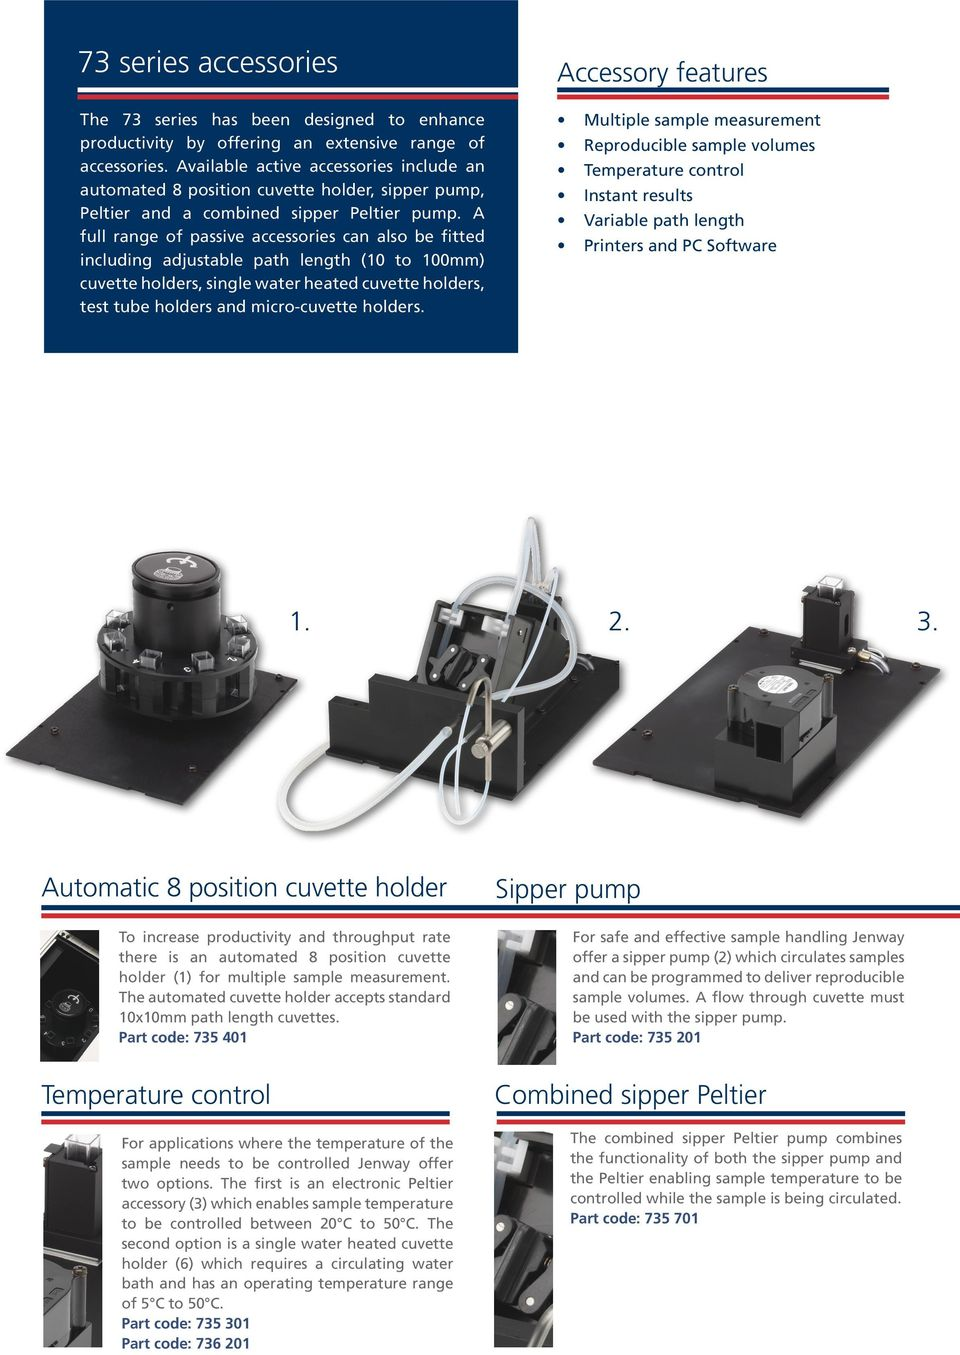 A full range of passive accessories can also be fitted including adjustable path length (10 to 100mm) cuvette holders, single water heated cuvette holders, test tube holders and micro-cuvette holders.